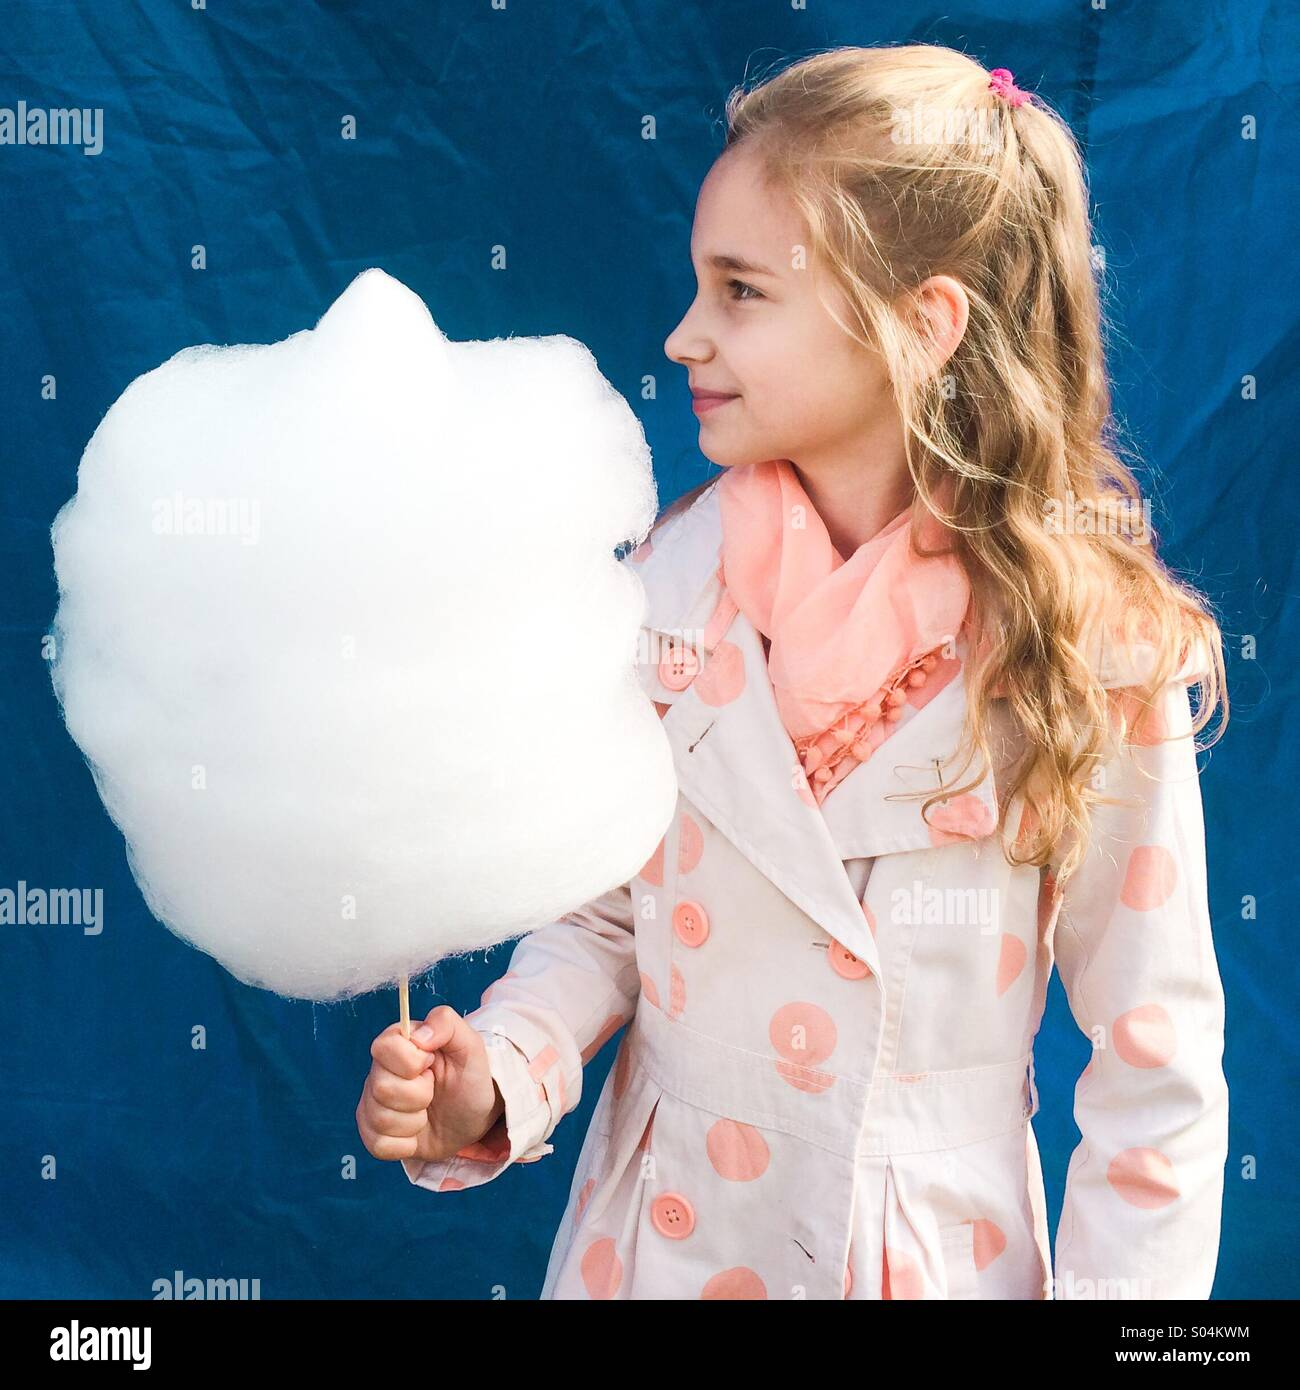 Girl with candyfloss - Stock Image